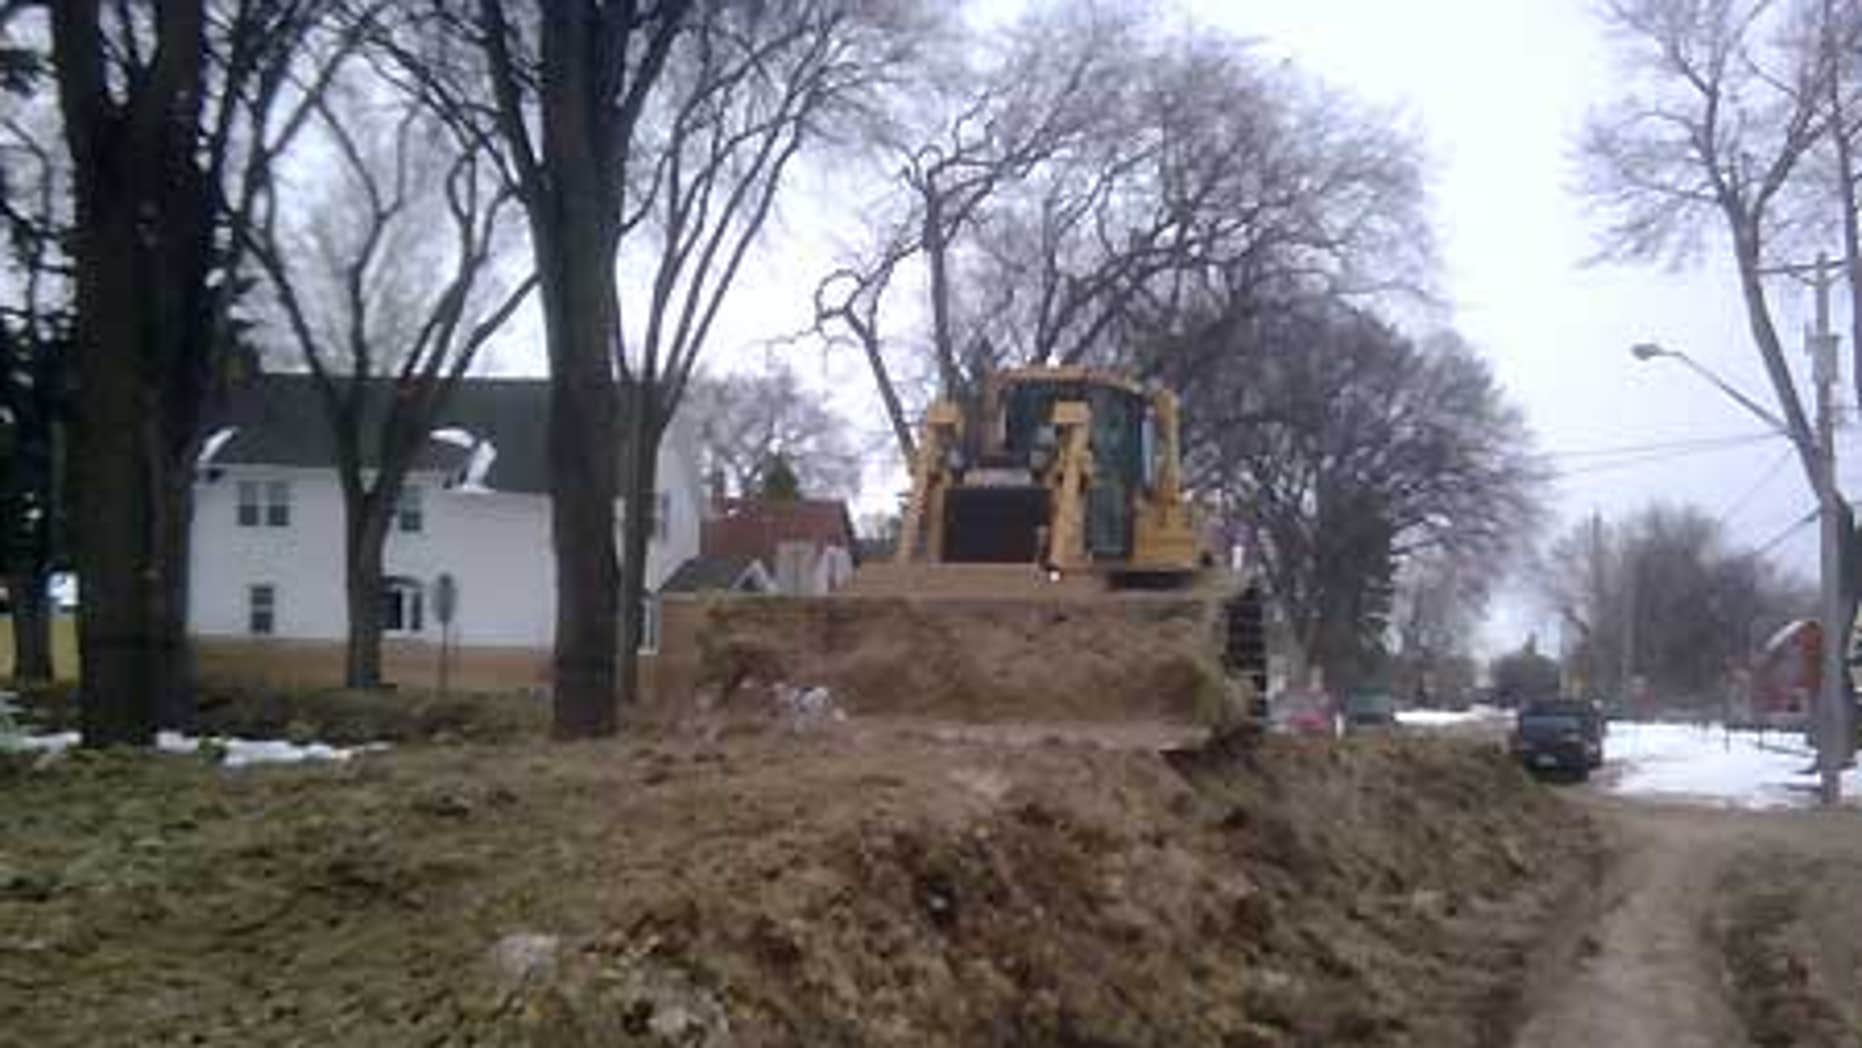 March 30: A Caterpillar bulldozer rests on top of a secondary levee in a downtown Fargo neighborhood near the Red River.